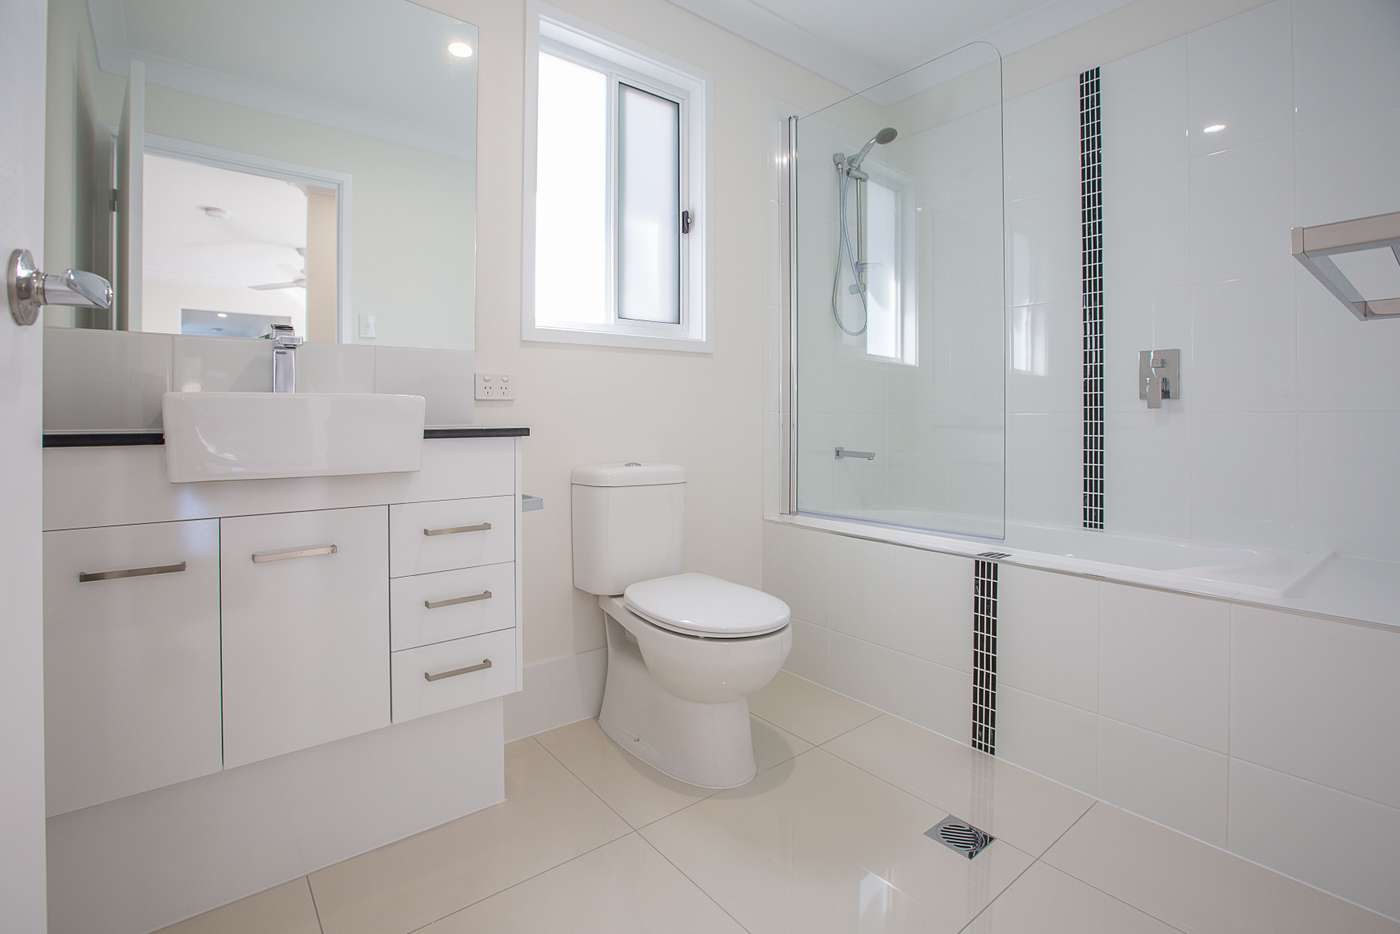 Seventh view of Homely house listing, 1/1 Lauenstein Crescent, Pimpama QLD 4209